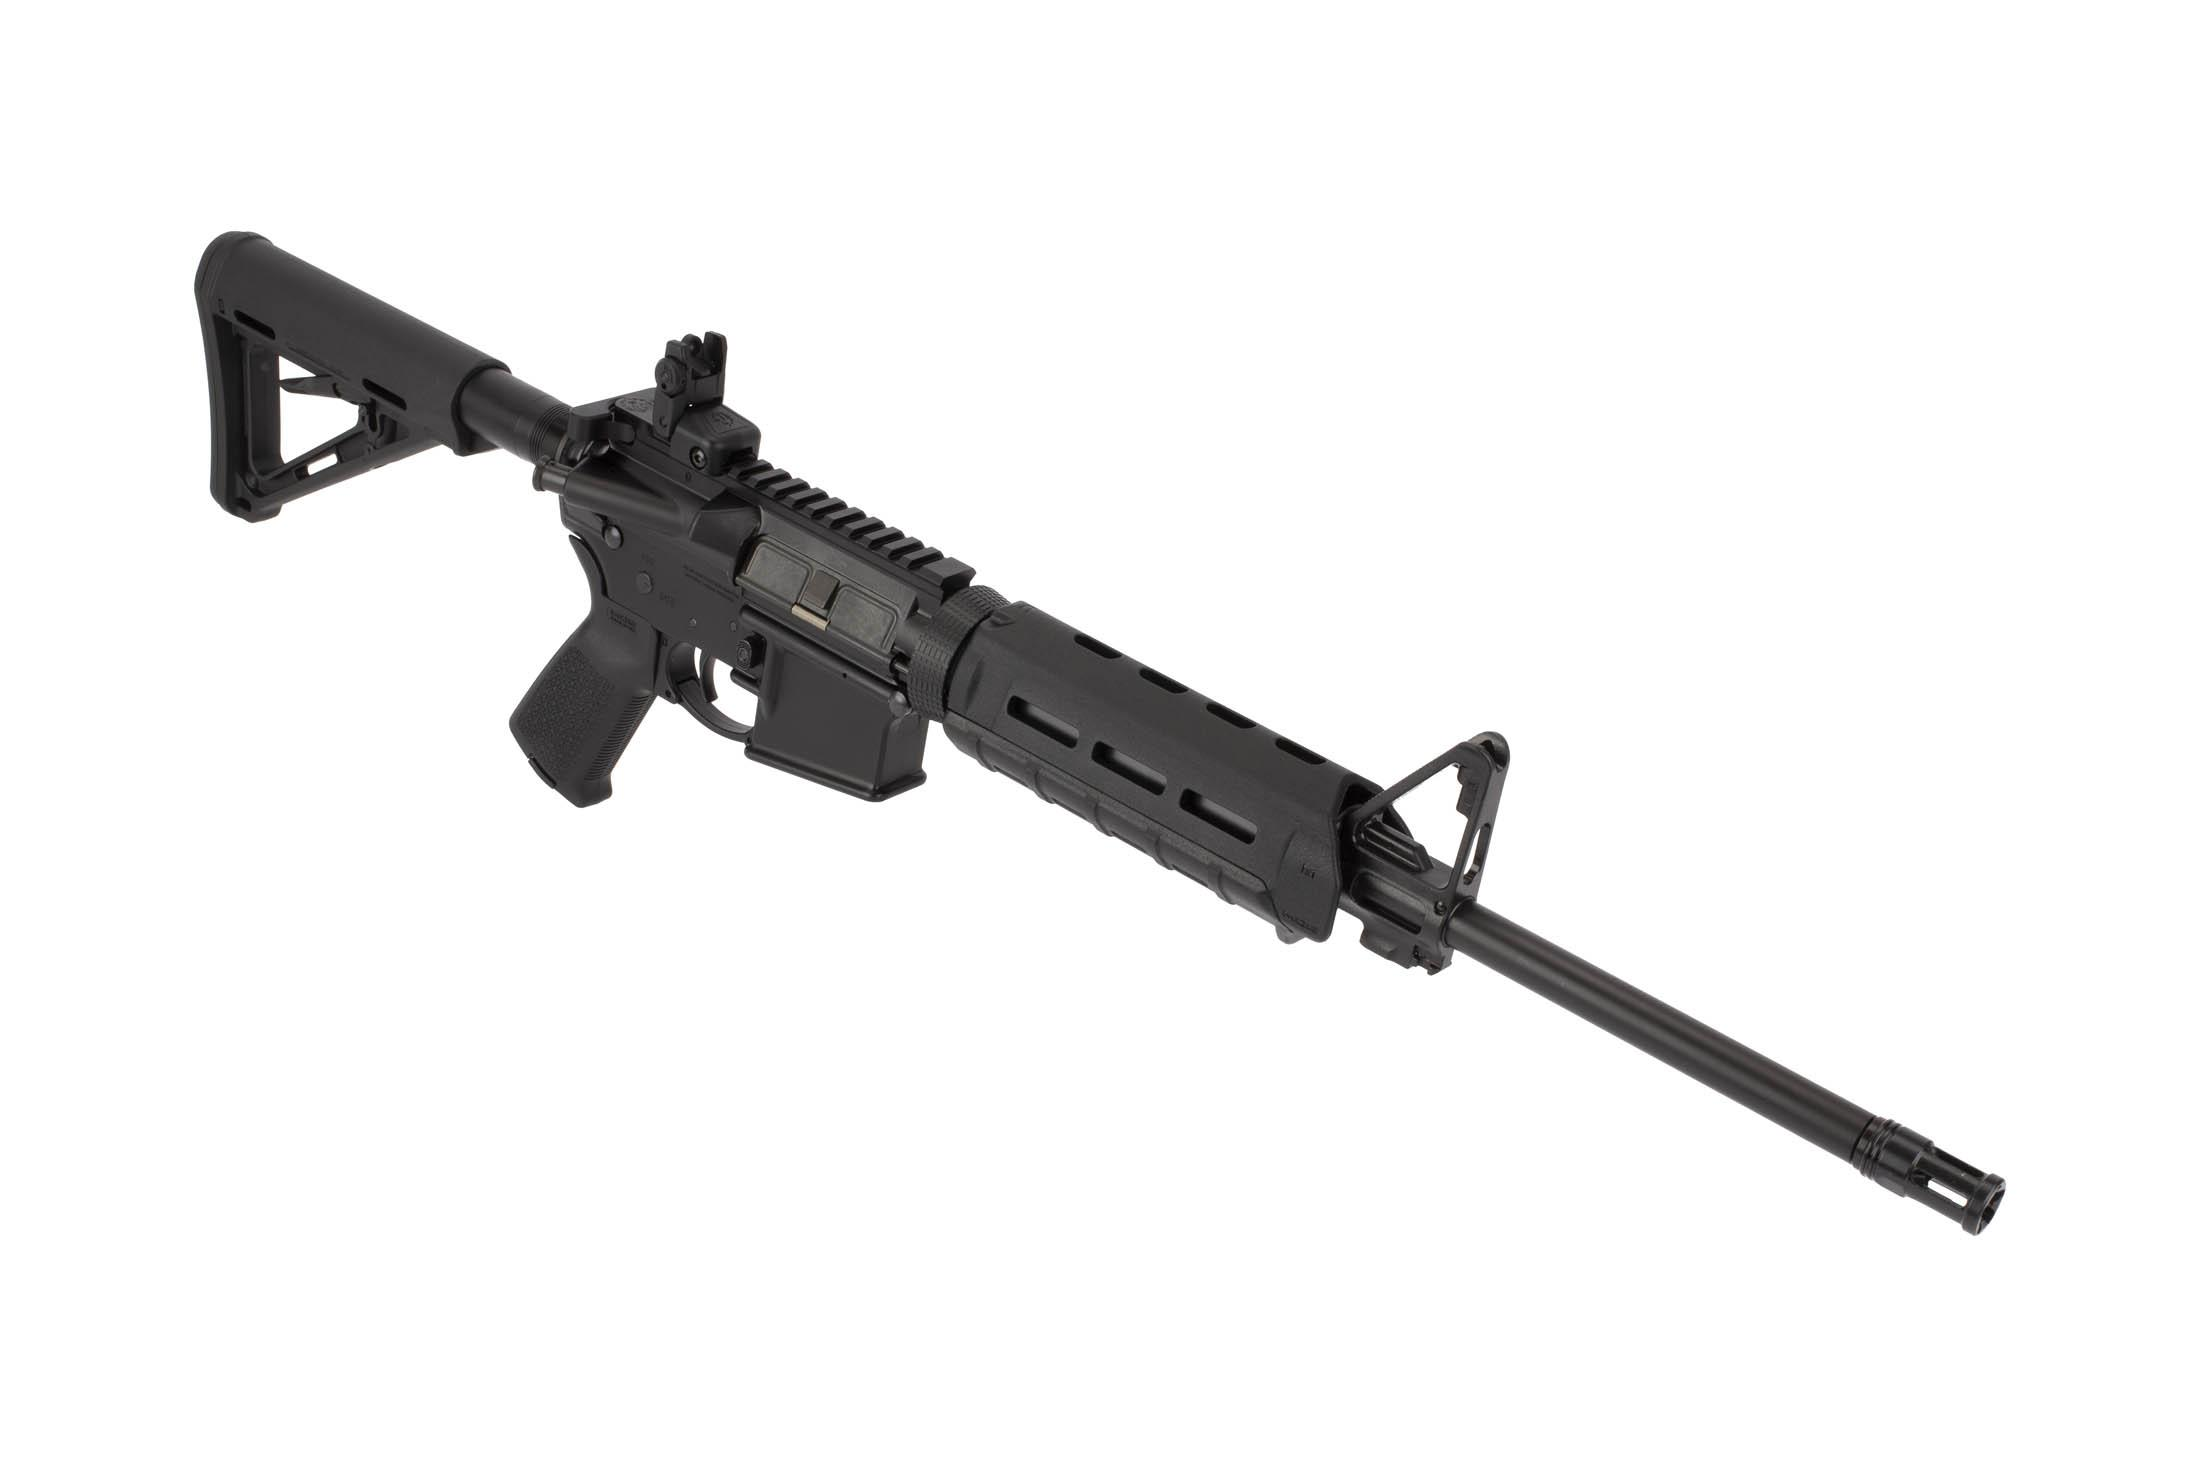 Ruger AR-556 8515 Complete AR-15 Carbine is chambered for 5.56 NATO and equipped with Magpul Furniture